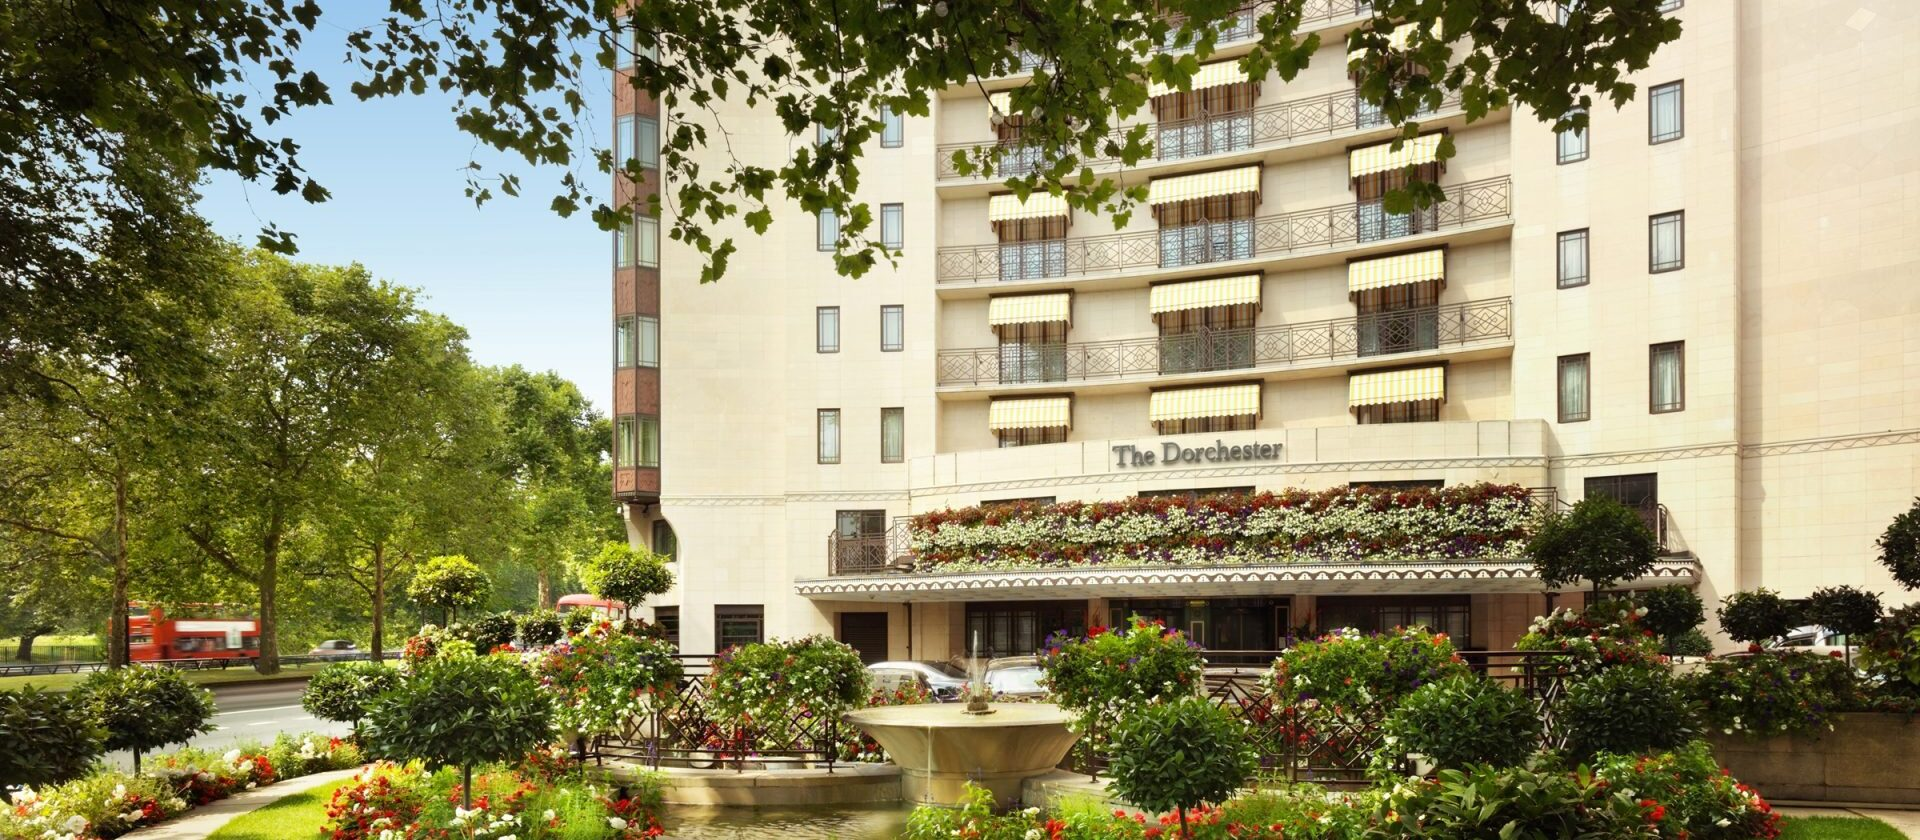 Featured Belvedere Dorchester Collection Hotels